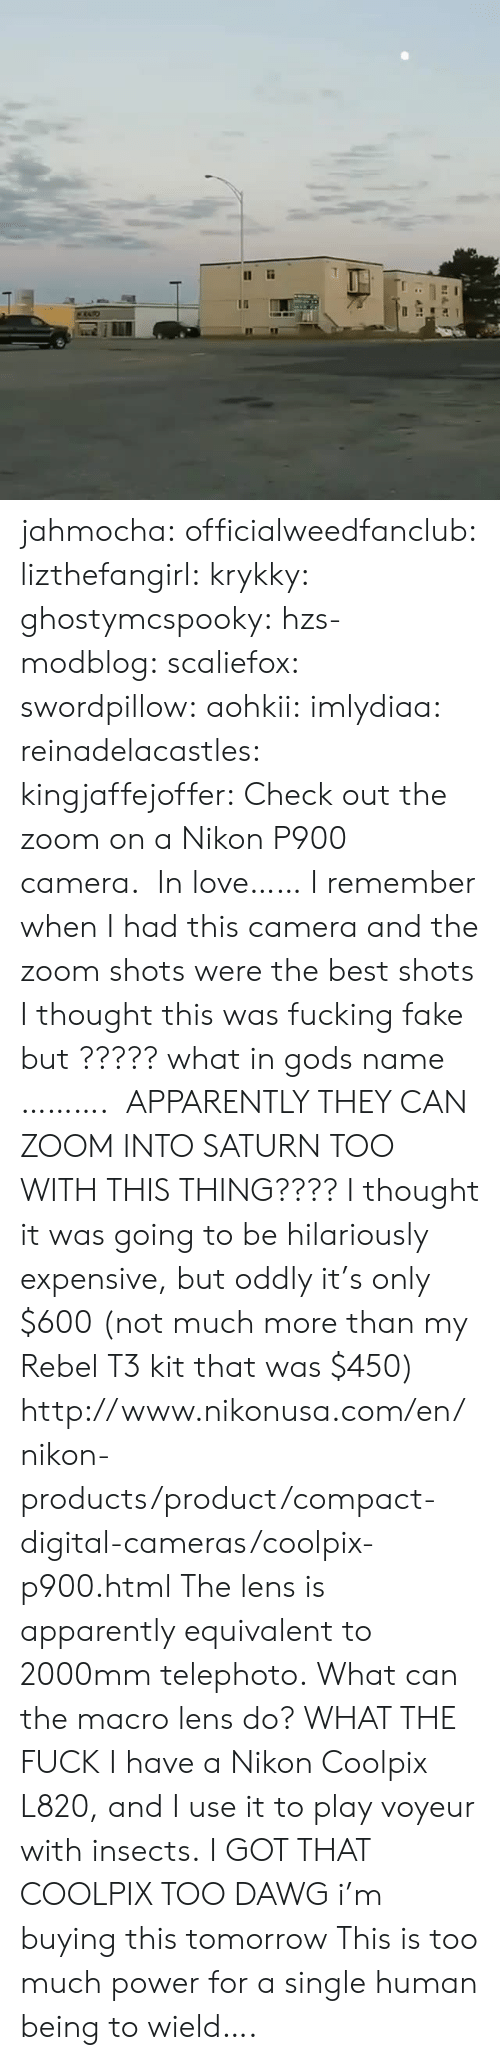 Apparently, Fake, and Fucking: jahmocha:  officialweedfanclub:  lizthefangirl:  krykky:  ghostymcspooky:  hzs-modblog:  scaliefox:  swordpillow:  aohkii:  imlydiaa:  reinadelacastles:  kingjaffejoffer:  Check out the zoom on a Nikon P900 camera.  In love……   I remember when I had this camera and the zoom shots were the best shots  I thought this was fucking fake but ????? what in gods name ……….   APPARENTLY THEY CAN ZOOM INTO SATURN TOO WITH THIS THING????  I thought it was going to be hilariously expensive, but oddly it's only $600 (not much more than my Rebel T3 kit that was $450) http://www.nikonusa.com/en/nikon-products/product/compact-digital-cameras/coolpix-p900.html The lens is apparently equivalent to 2000mm telephoto.  What can the macro lens do?  WHAT THE FUCK  Ihave a Nikon Coolpix L820, and I use it to play voyeur with insects.   I GOT THAT COOLPIX TOO DAWG   i'm buying this tomorrow   This is too much power for a single human being to wield….